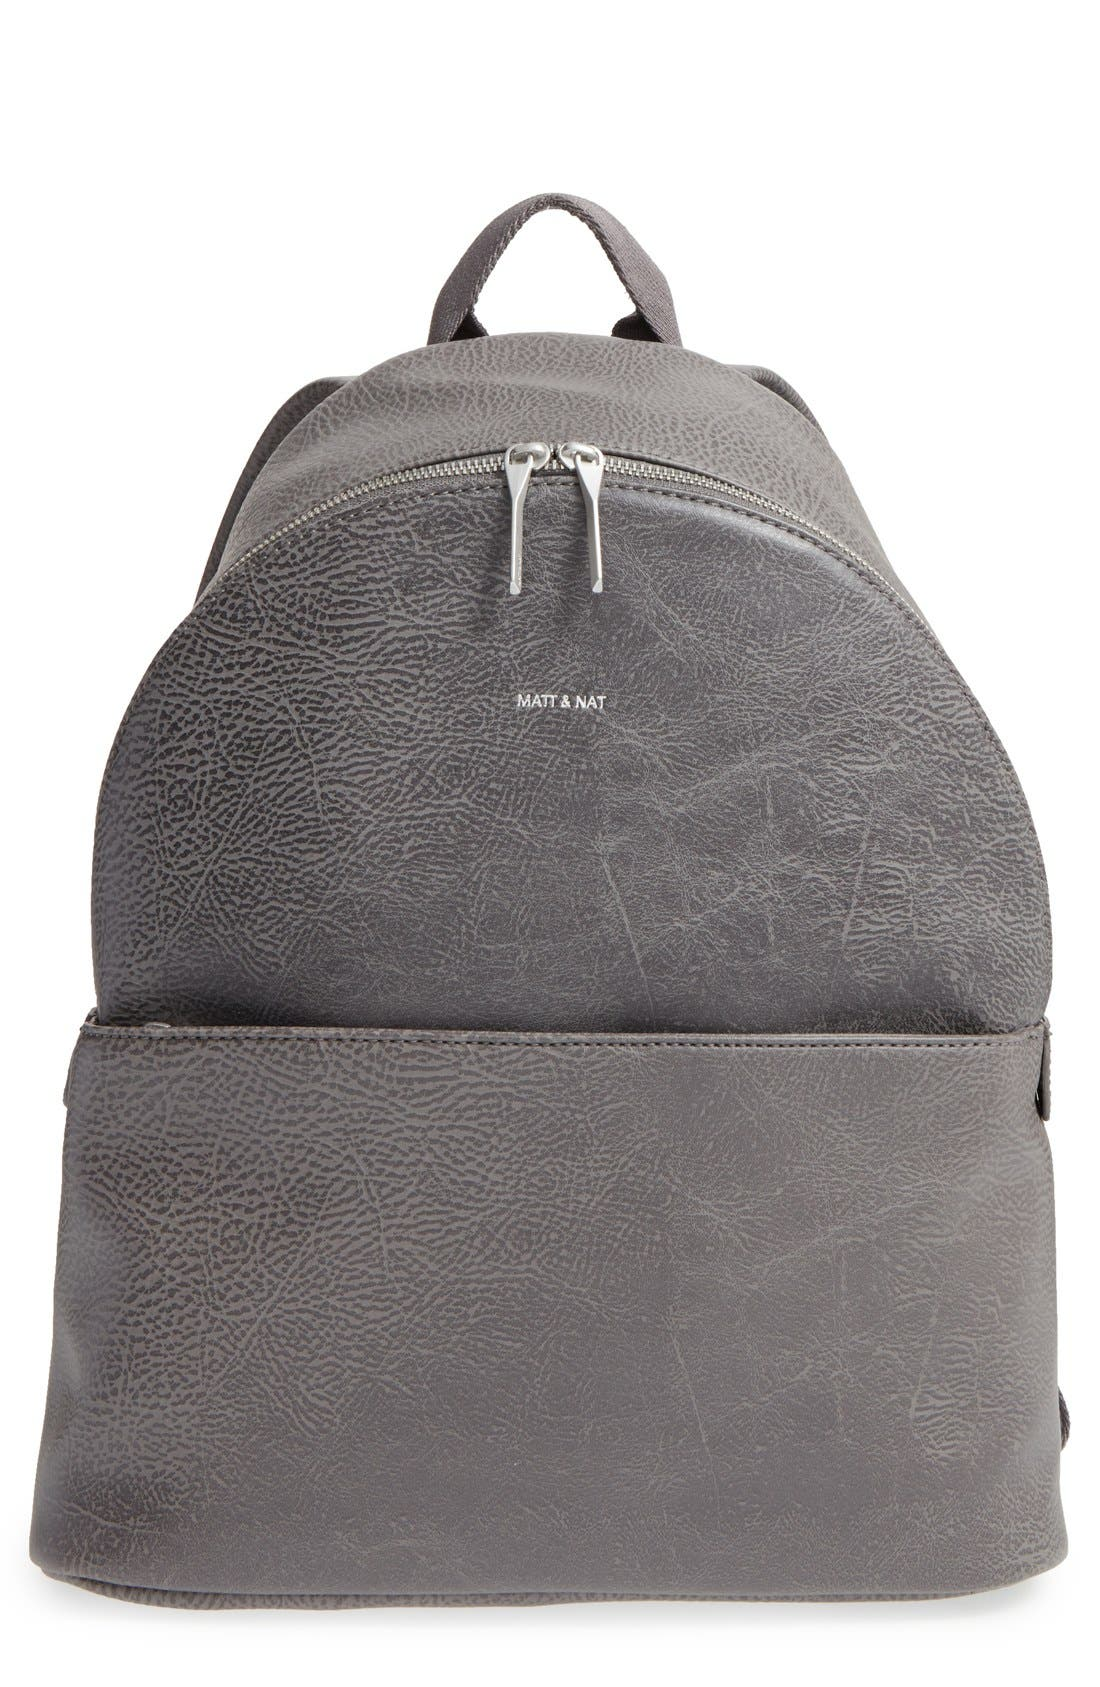 Alternate Image 1 Selected - Matt & Nat 'July' Faux Leather Backpack